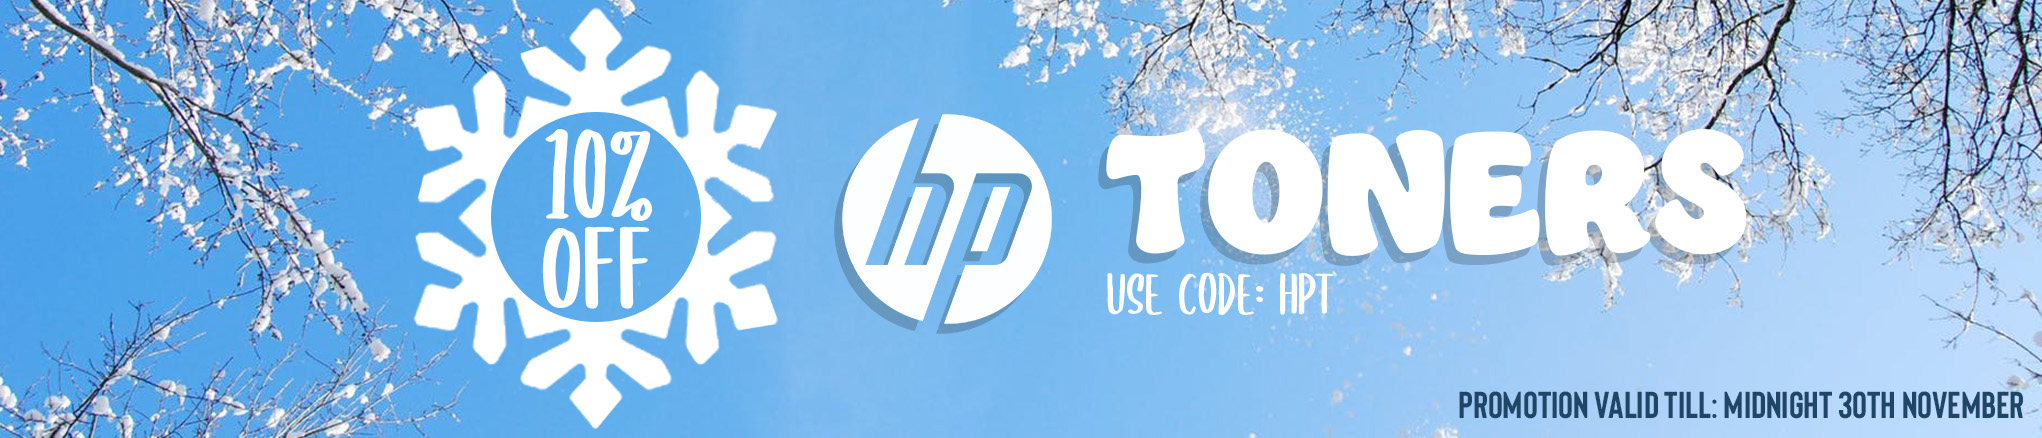 10% off all HP toner cartridges - use code HPT